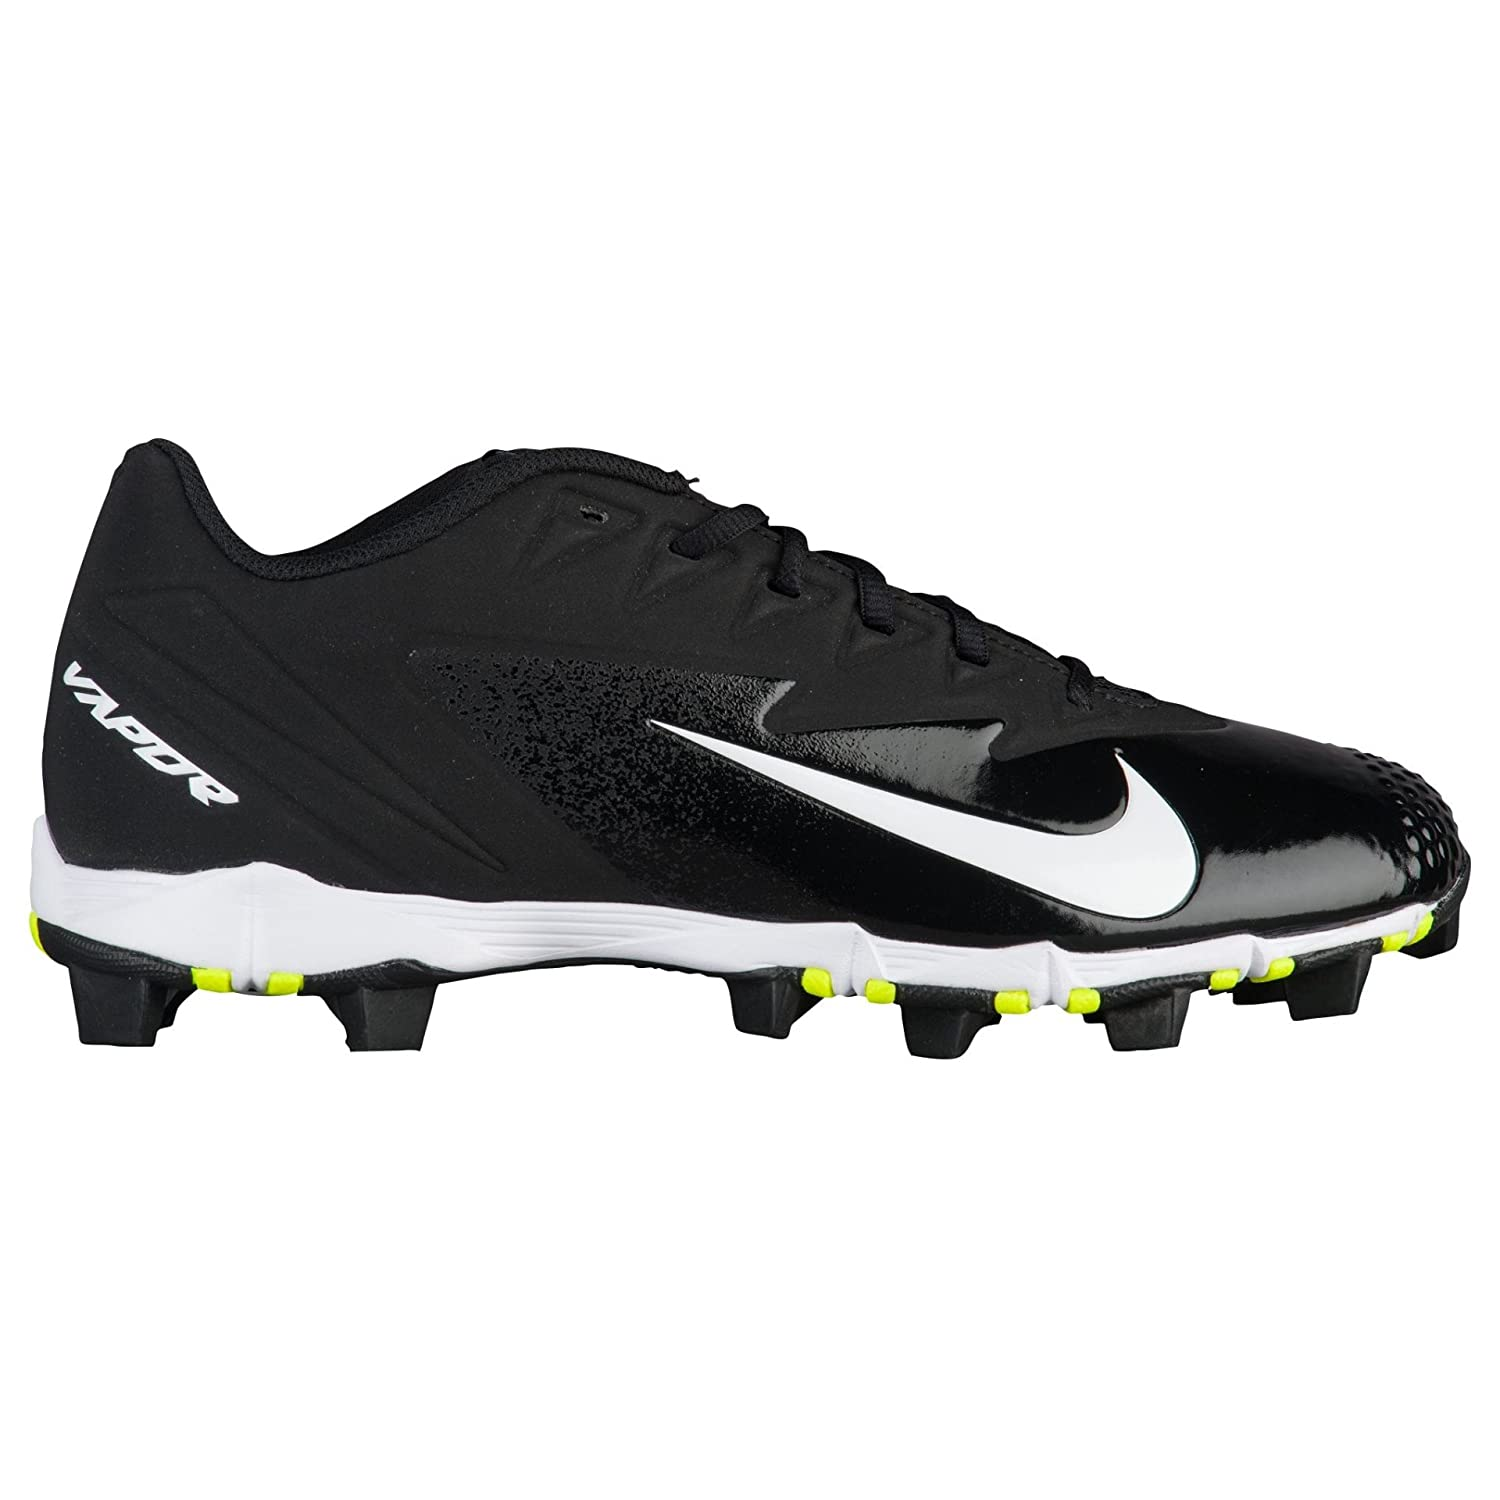 Nike Men's Vapor Ultrafly Keystone Baseball Cleat schwarz Weiß Anthracite Anthracite Anthracite Größe 9 M US de4771